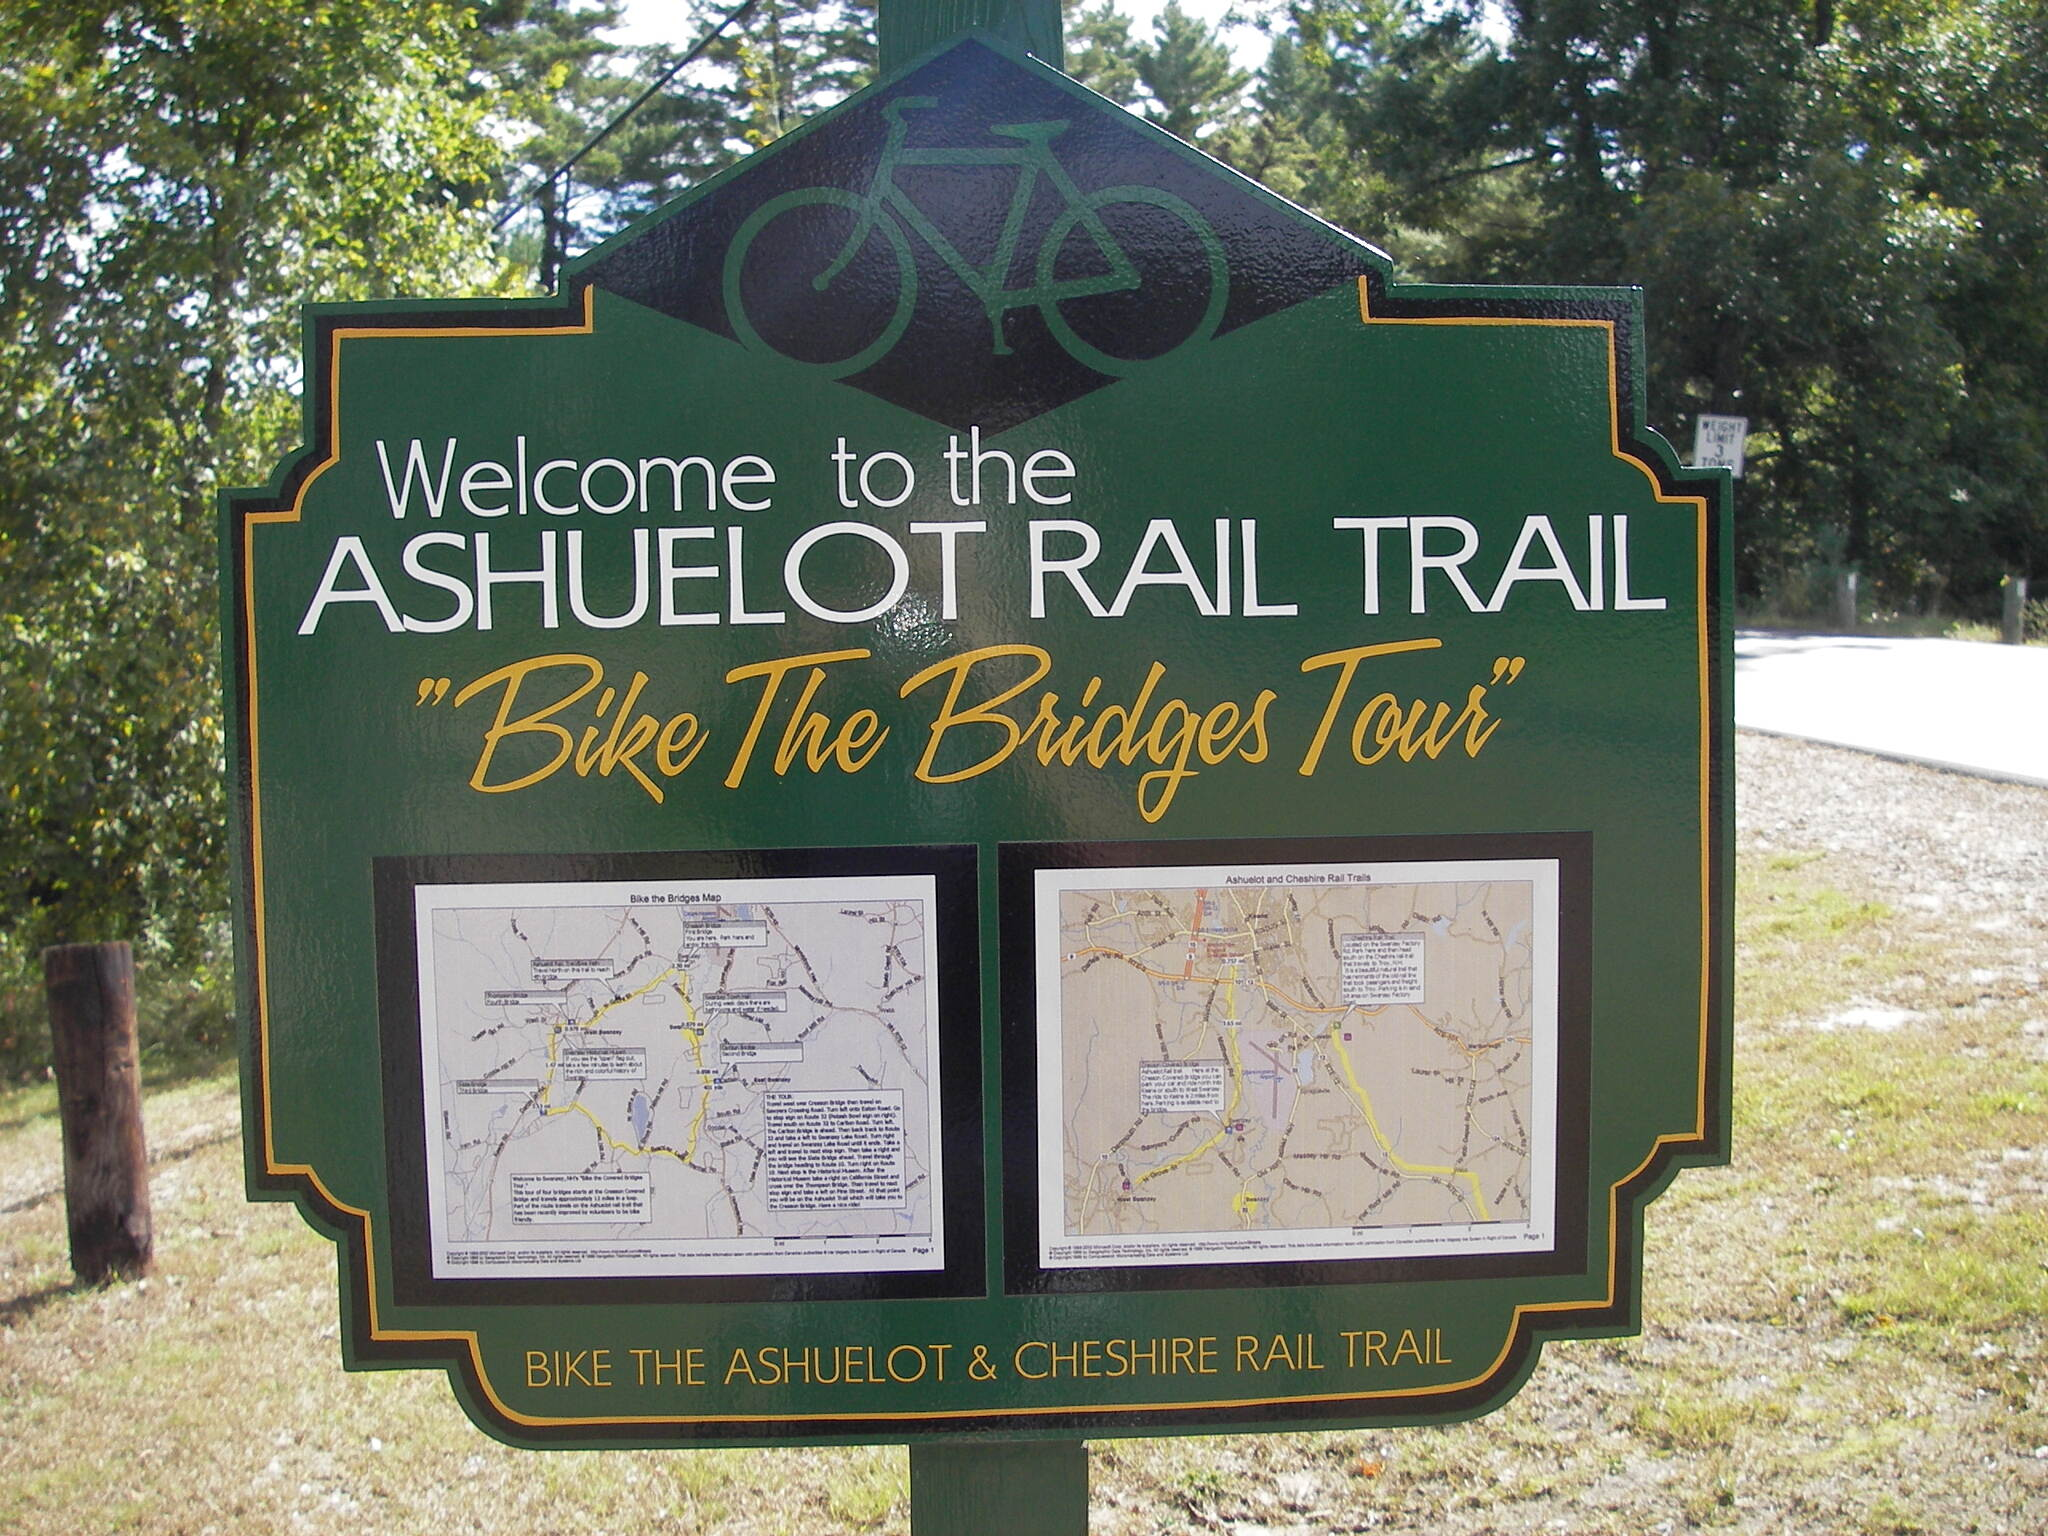 Ashuelot Recreational Rail Trail Sign near Cresson Bridge South of Keene